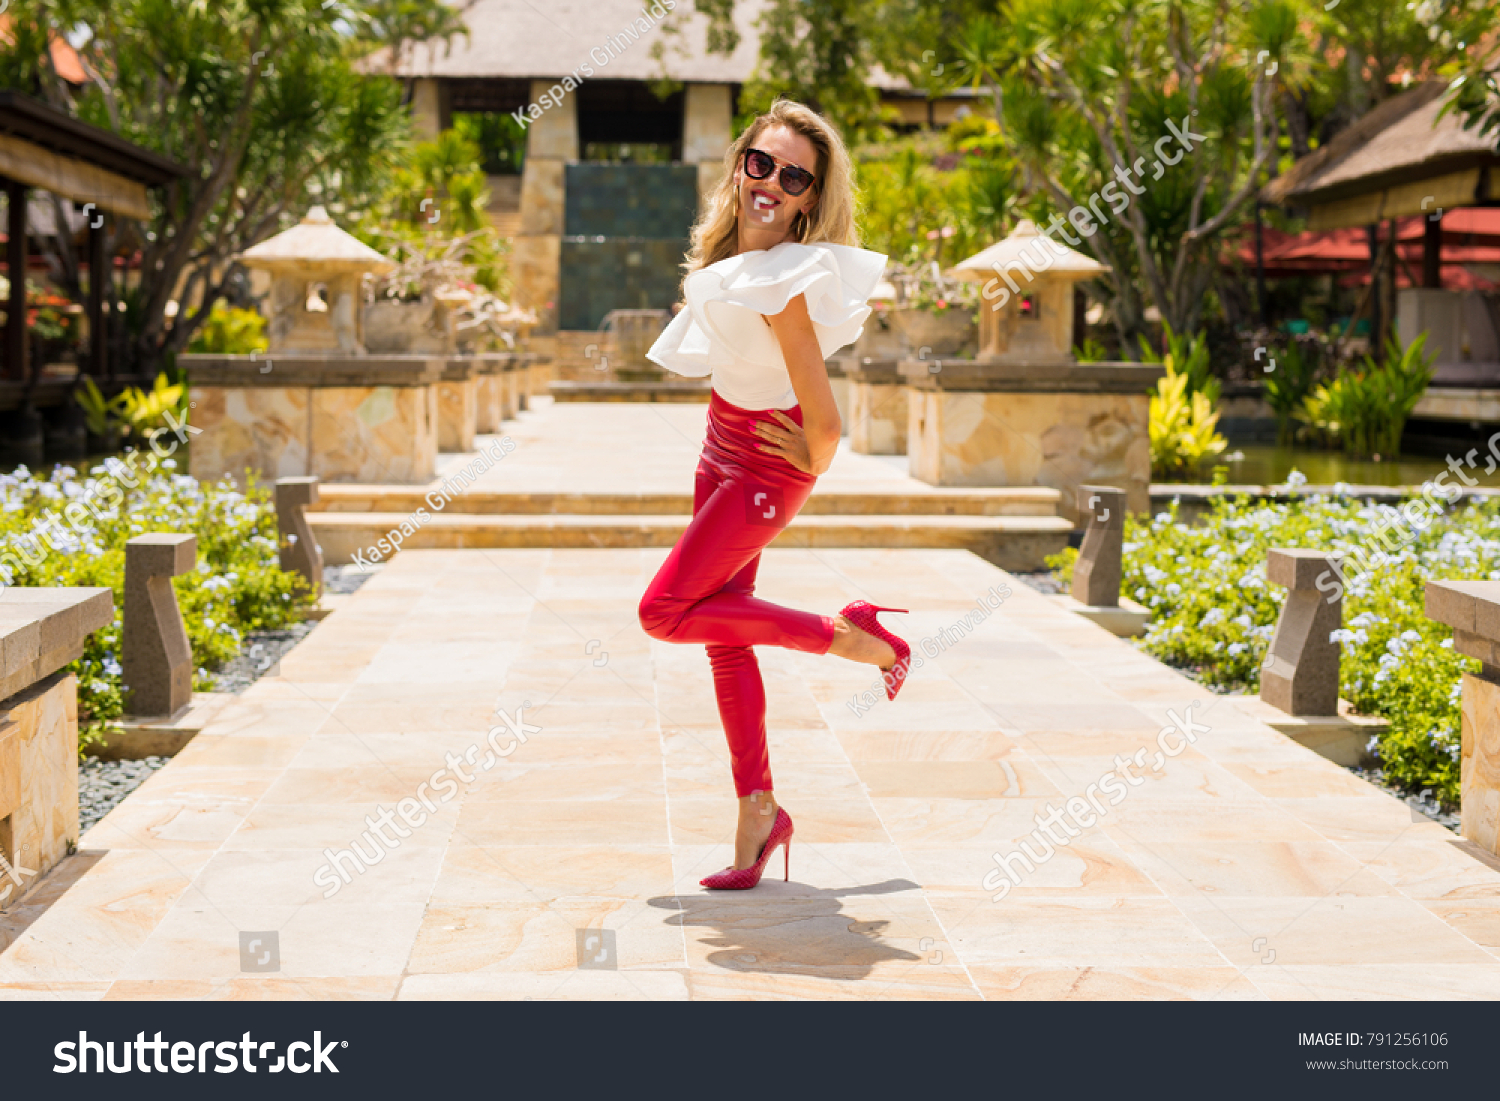 6c21c31e5c6 Attractive Woman Red Leather Pants High Stock Photo (Edit Now ...